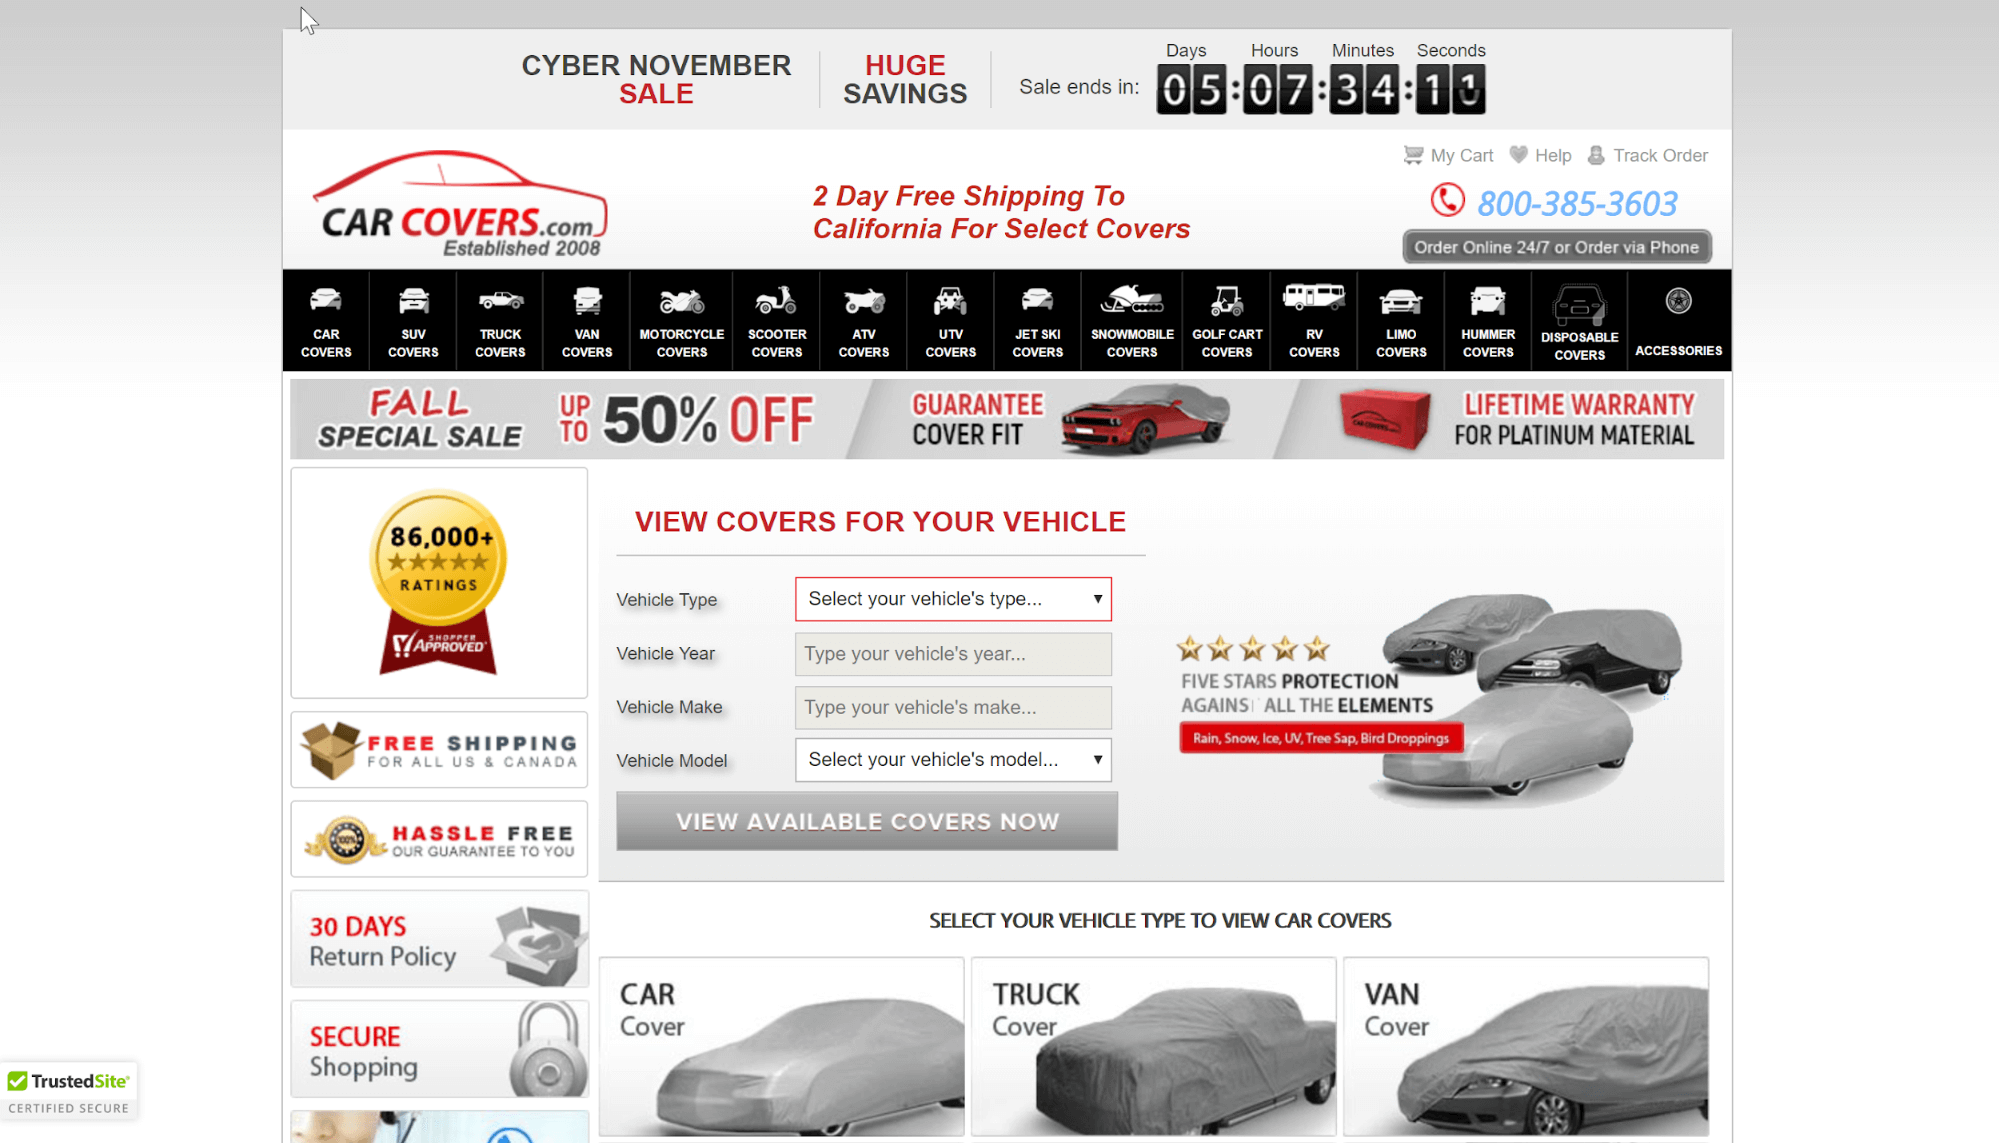 Car Covers saw an increase in conversions by switching their trust seal to TrustedSite.